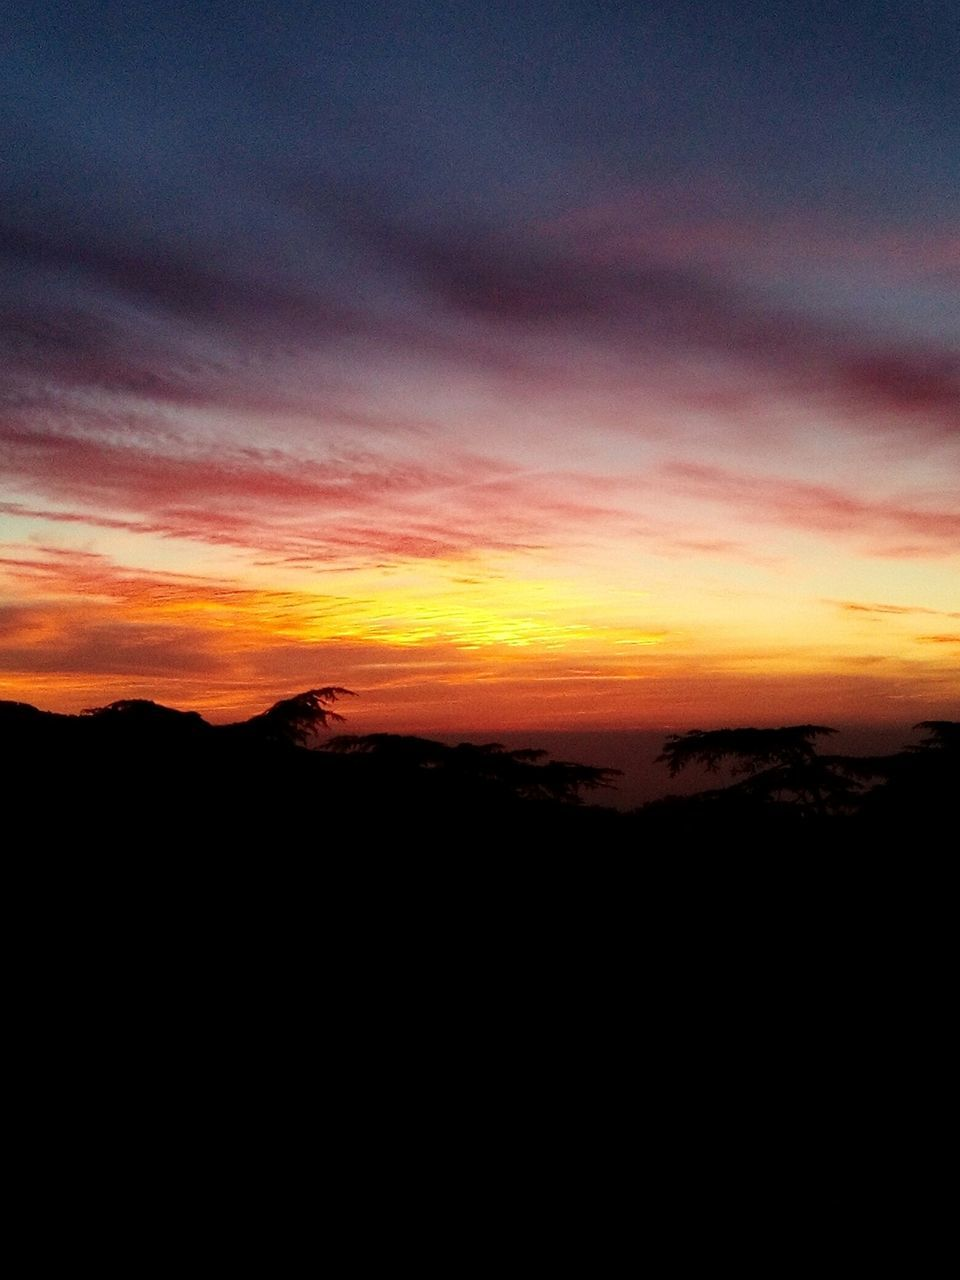 sunset, silhouette, beauty in nature, nature, tranquil scene, scenics, landscape, tranquility, sky, no people, outdoors